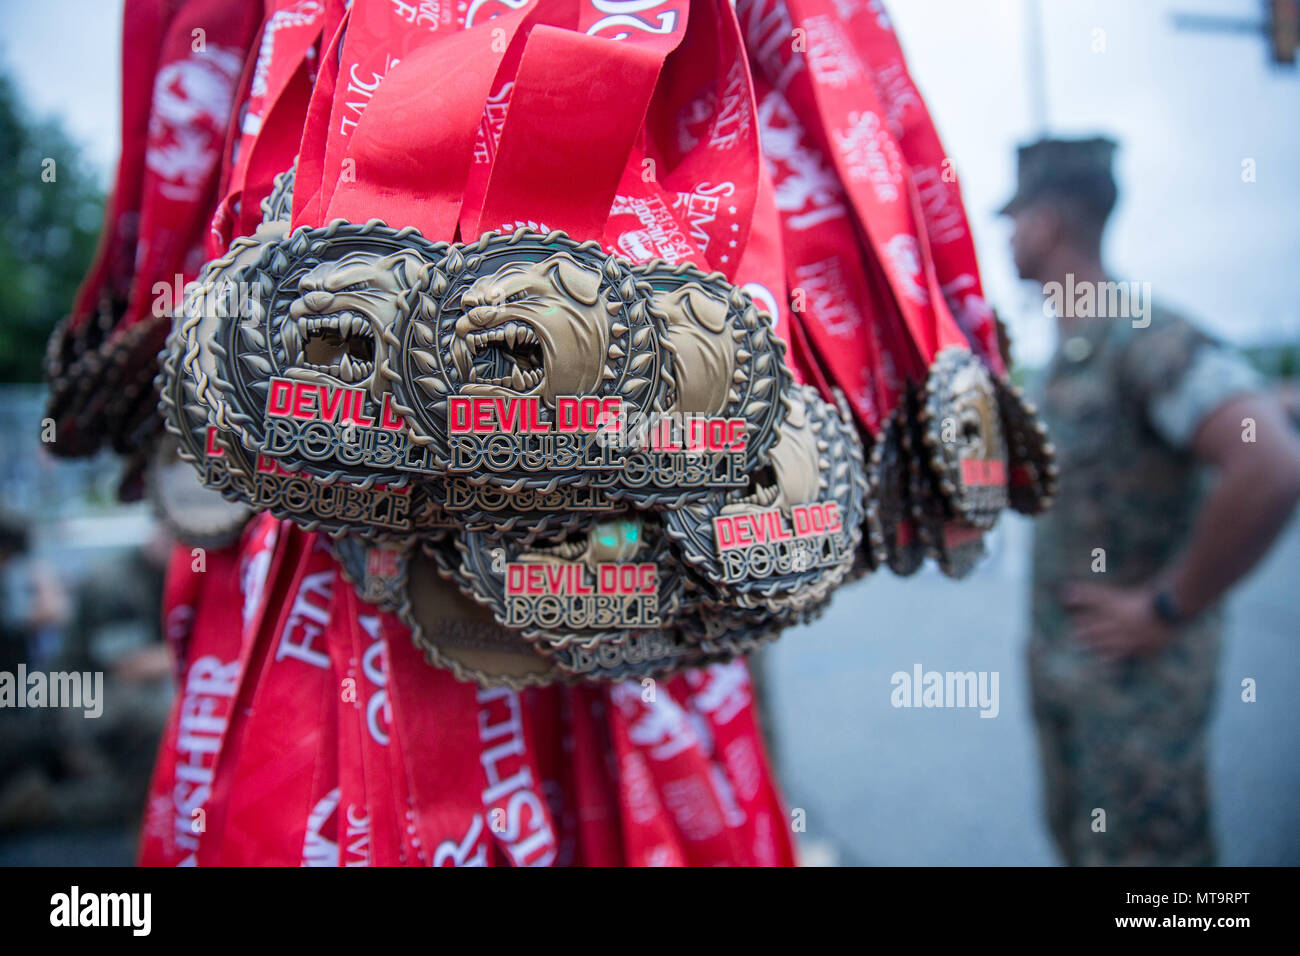 medals for the devil dog double race of the 11th annual marine corps